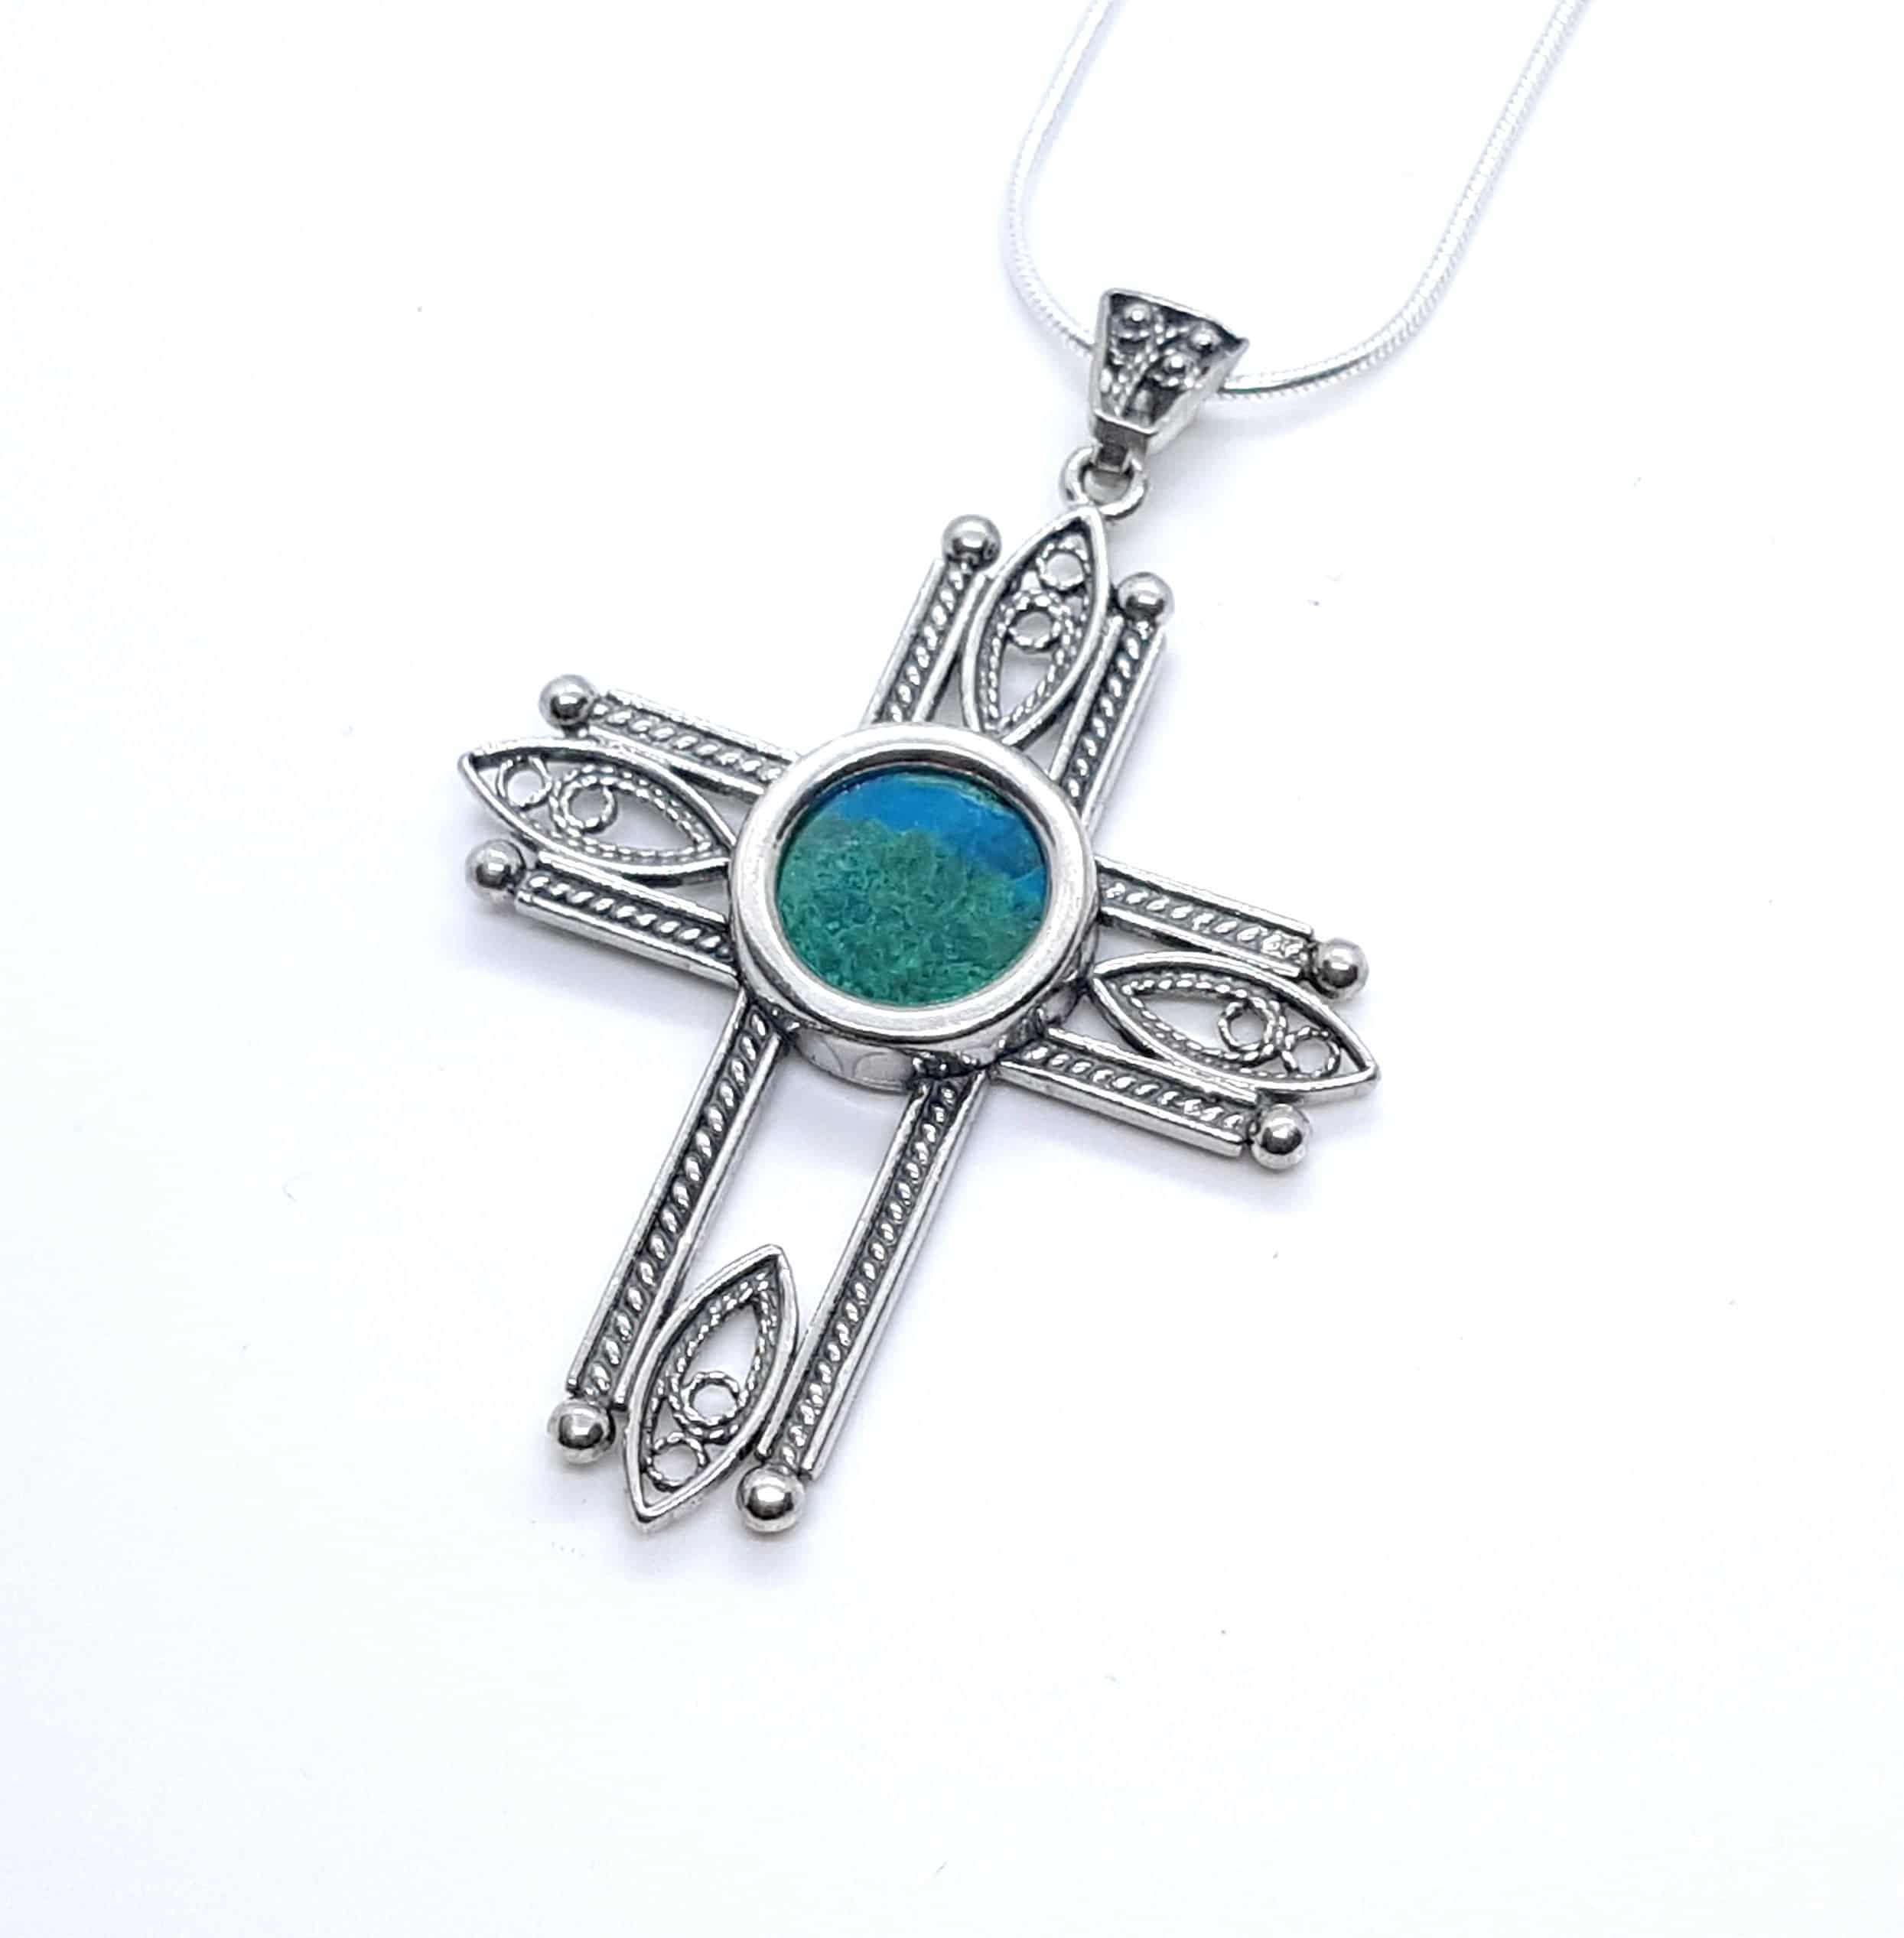 Filigree 925 Silver Eilat Stone Cross Pendant Necklace ,925 Silver Cross ,Filgree Cross King solomon stone